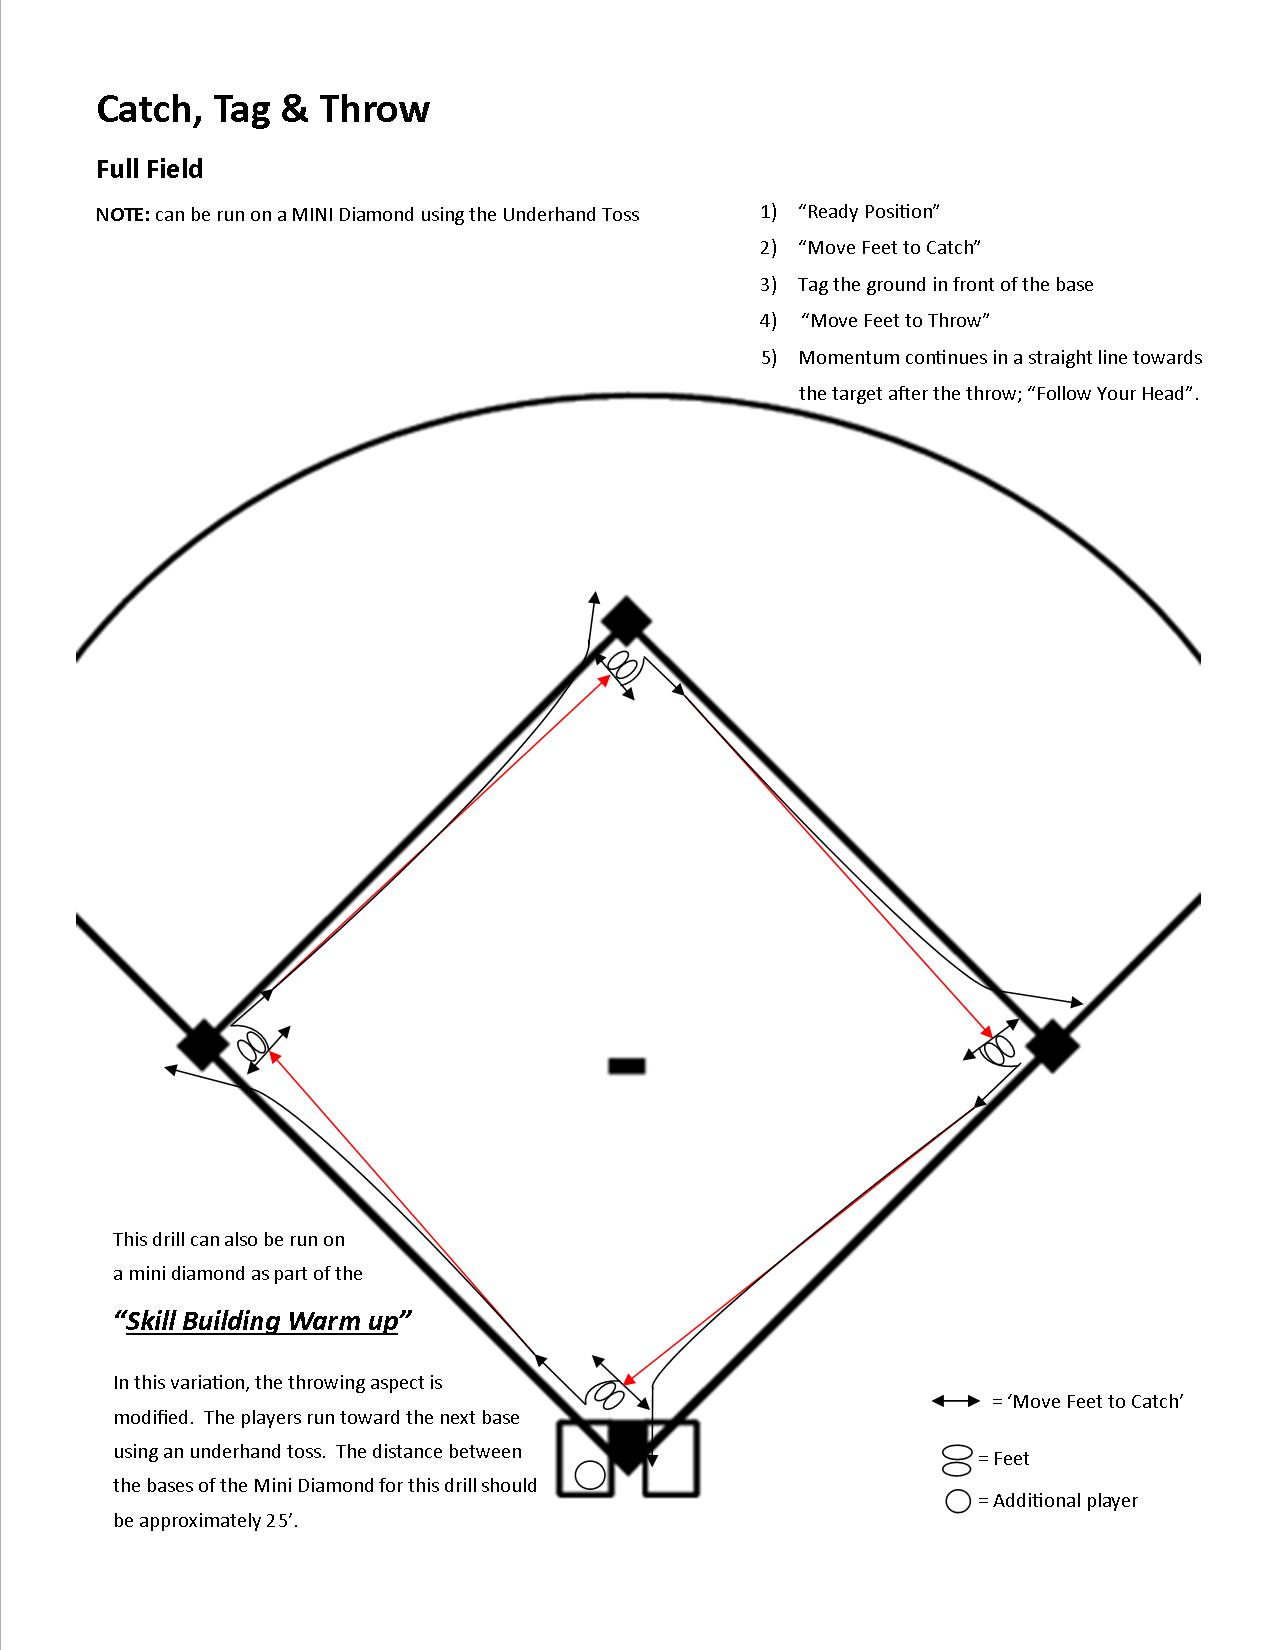 "Five players are needed to run this drill. Two at the base the drill starts and one at each of the other bases. Home plate is the logical place to start so we put two players there. Assuming 12 players on a team, we run this drill with six players; the sixth player can start second base. (We can set up a second diamond in the outfield using throw down bases, and have a second group of six running the drill on that diamond. Another option is to run another drill with six players in the outfield. If the other six player drill requires use of the infield, this drill can be the one run in the outfield.  First base is considered a generic base regarding making a tag, which is put down where a runner coming from home would be sliding. We want the players to stay consistent in their actions and not have to do something different when taking a throw at first during the drill.  This drill is all about the players being disciplined in their actions. it is our responsibility as coaches to police the actions (not results) in the drill. If the players get lazy with their movements (and they will) we stop the drill get them refocused and get them back at it.   ACTIONS:    --> ""Ready Position"" in preparation for the throw    --> ""Move Feet to Catch"" / ""Ball First, Base Second""    --> Put the tag on the ground on the side of the base the runner would be sliding into. (kids will often simply wave their glove at the base for the tagging action - we DO NOT allow this to happen. We stop the drill immediately and have that player make a proper tag.    --> Get glove side of the body facing the next base...    --> ""Move Feet to Throw"" and ""Follow Your Head""...    --> The player then rotates to the next base"